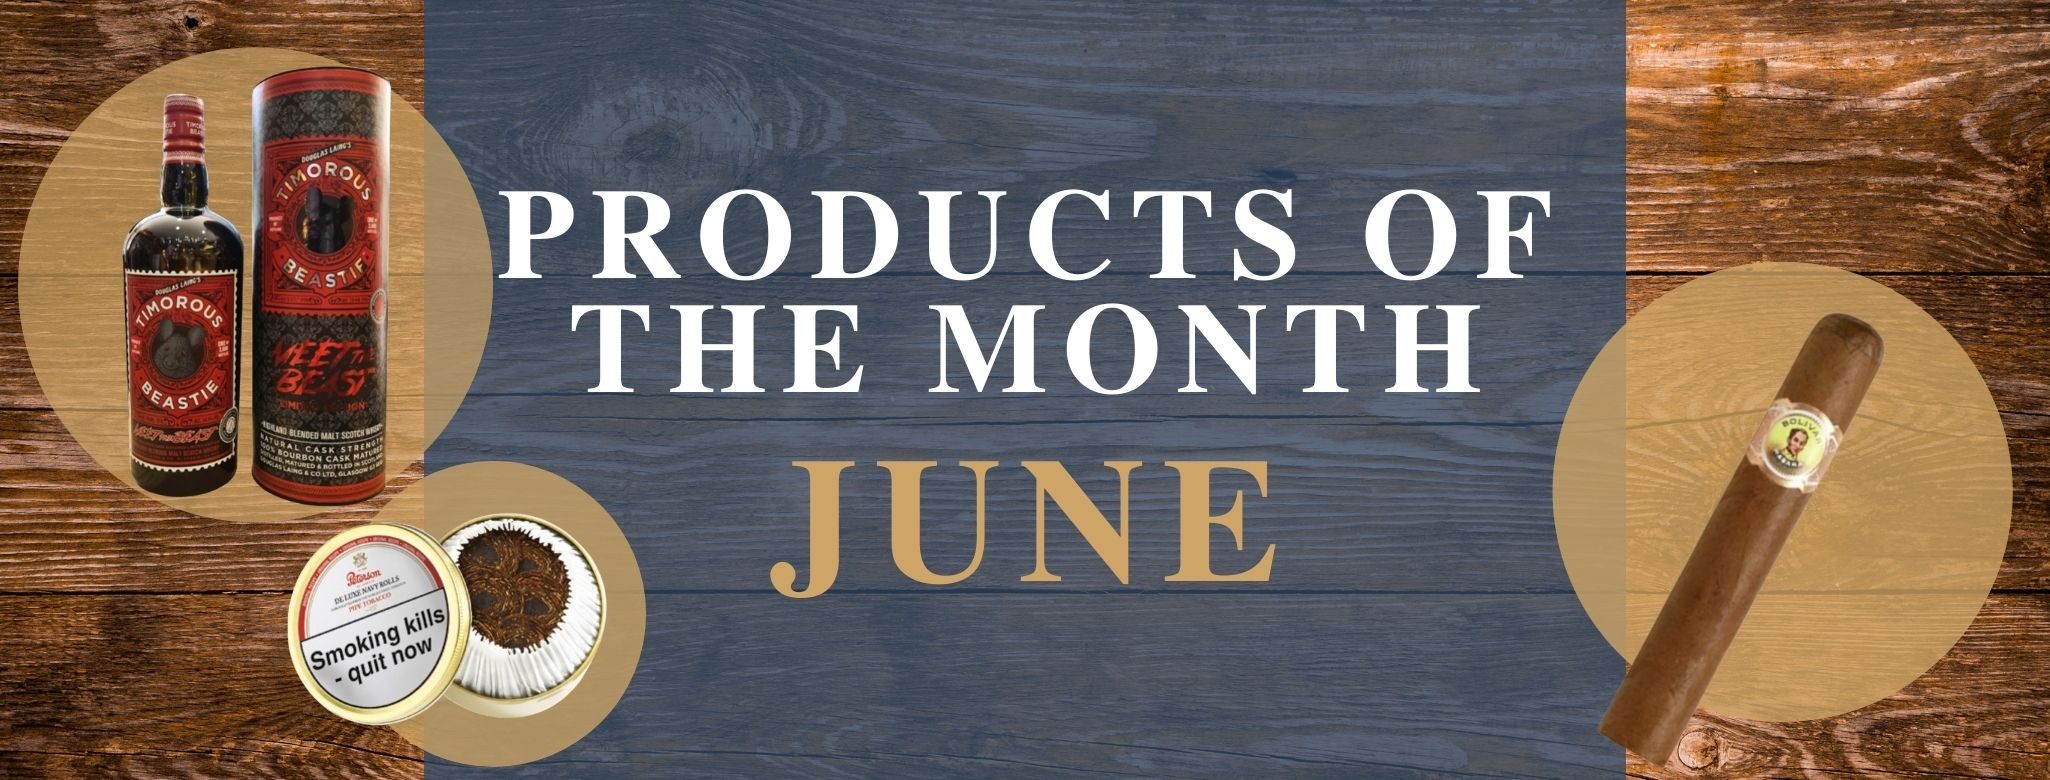 Product of the month June